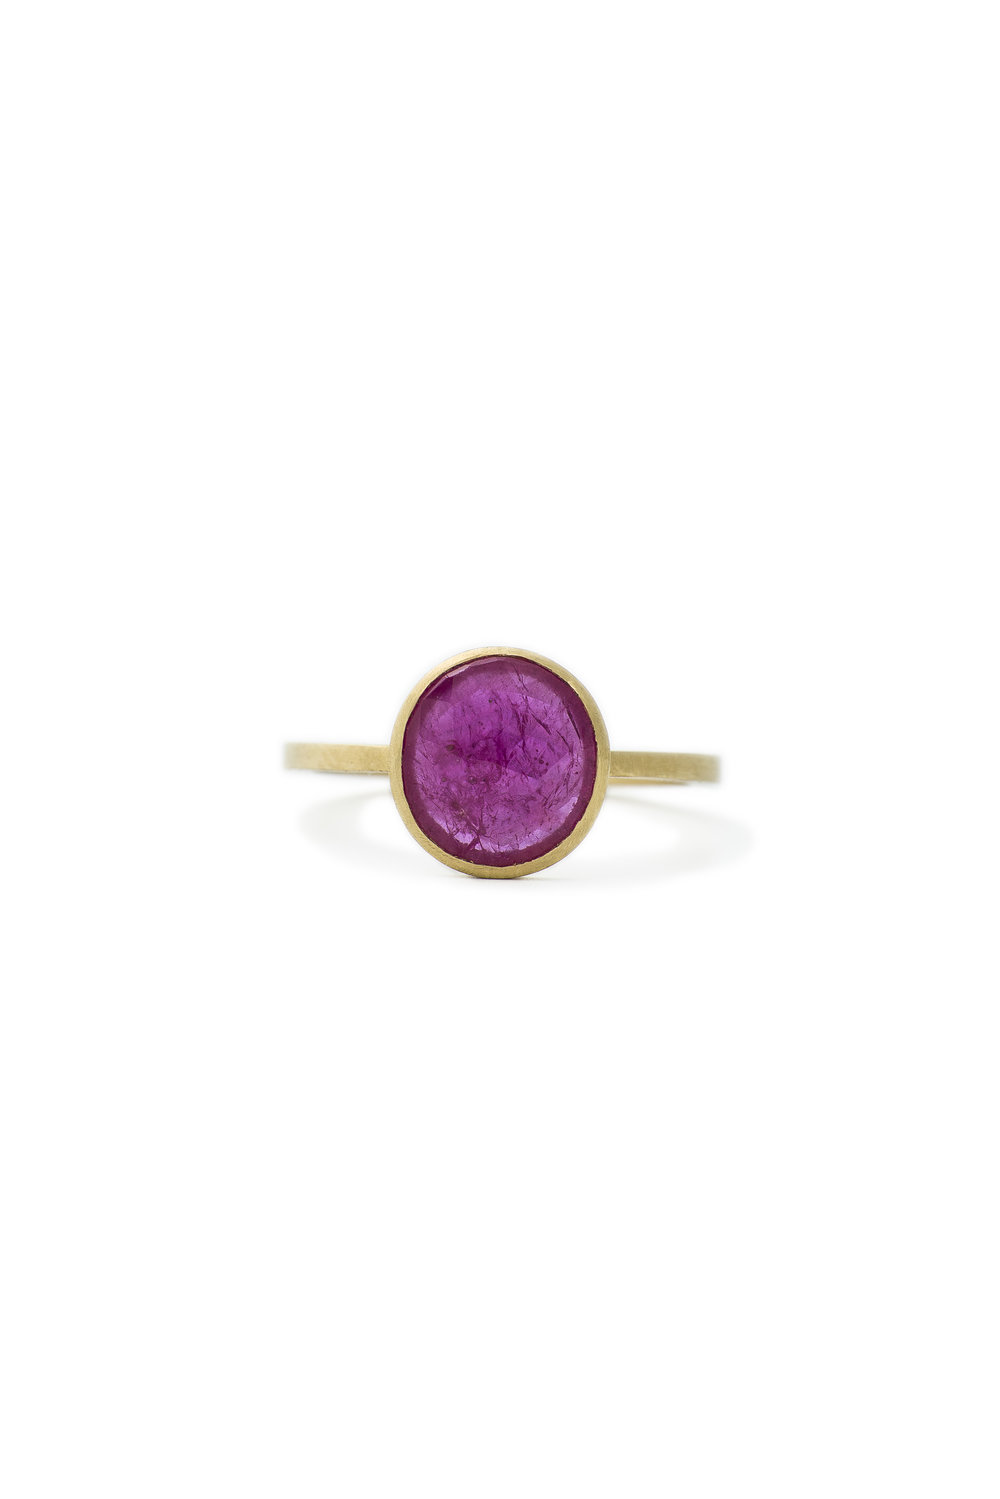 Rose cut ruby slice ring in yellow gold, £1620